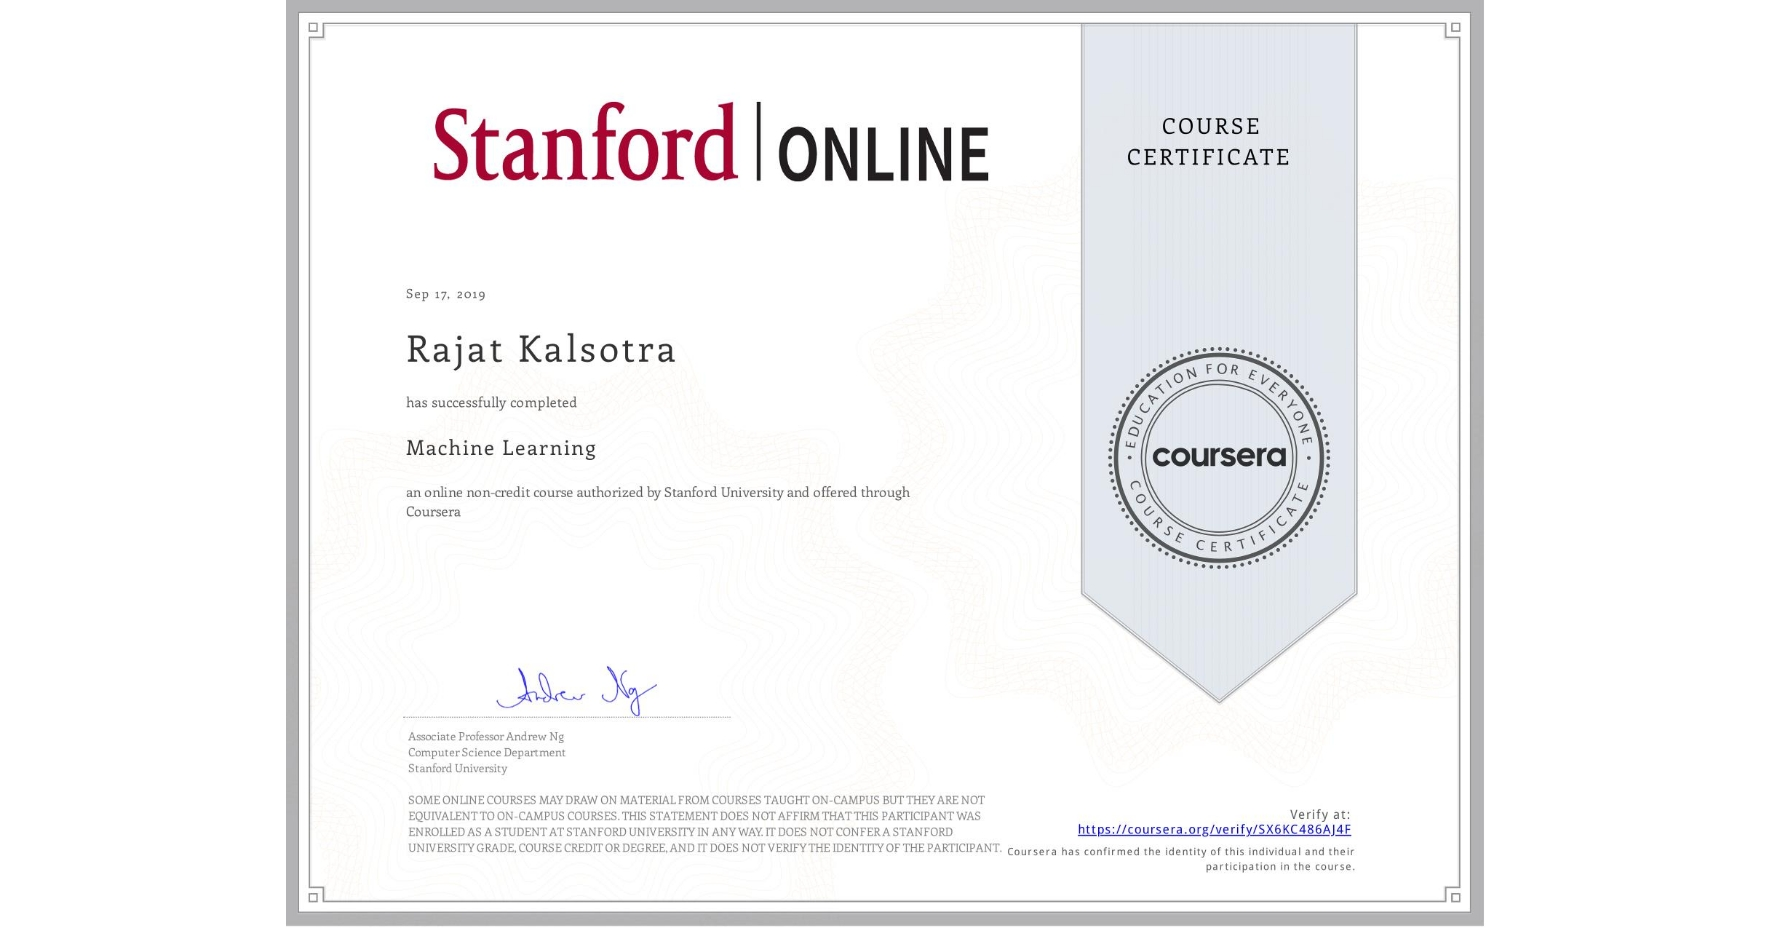 View certificate for Rajat Kalsotra, Machine Learning, an online non-credit course authorized by Stanford University and offered through Coursera